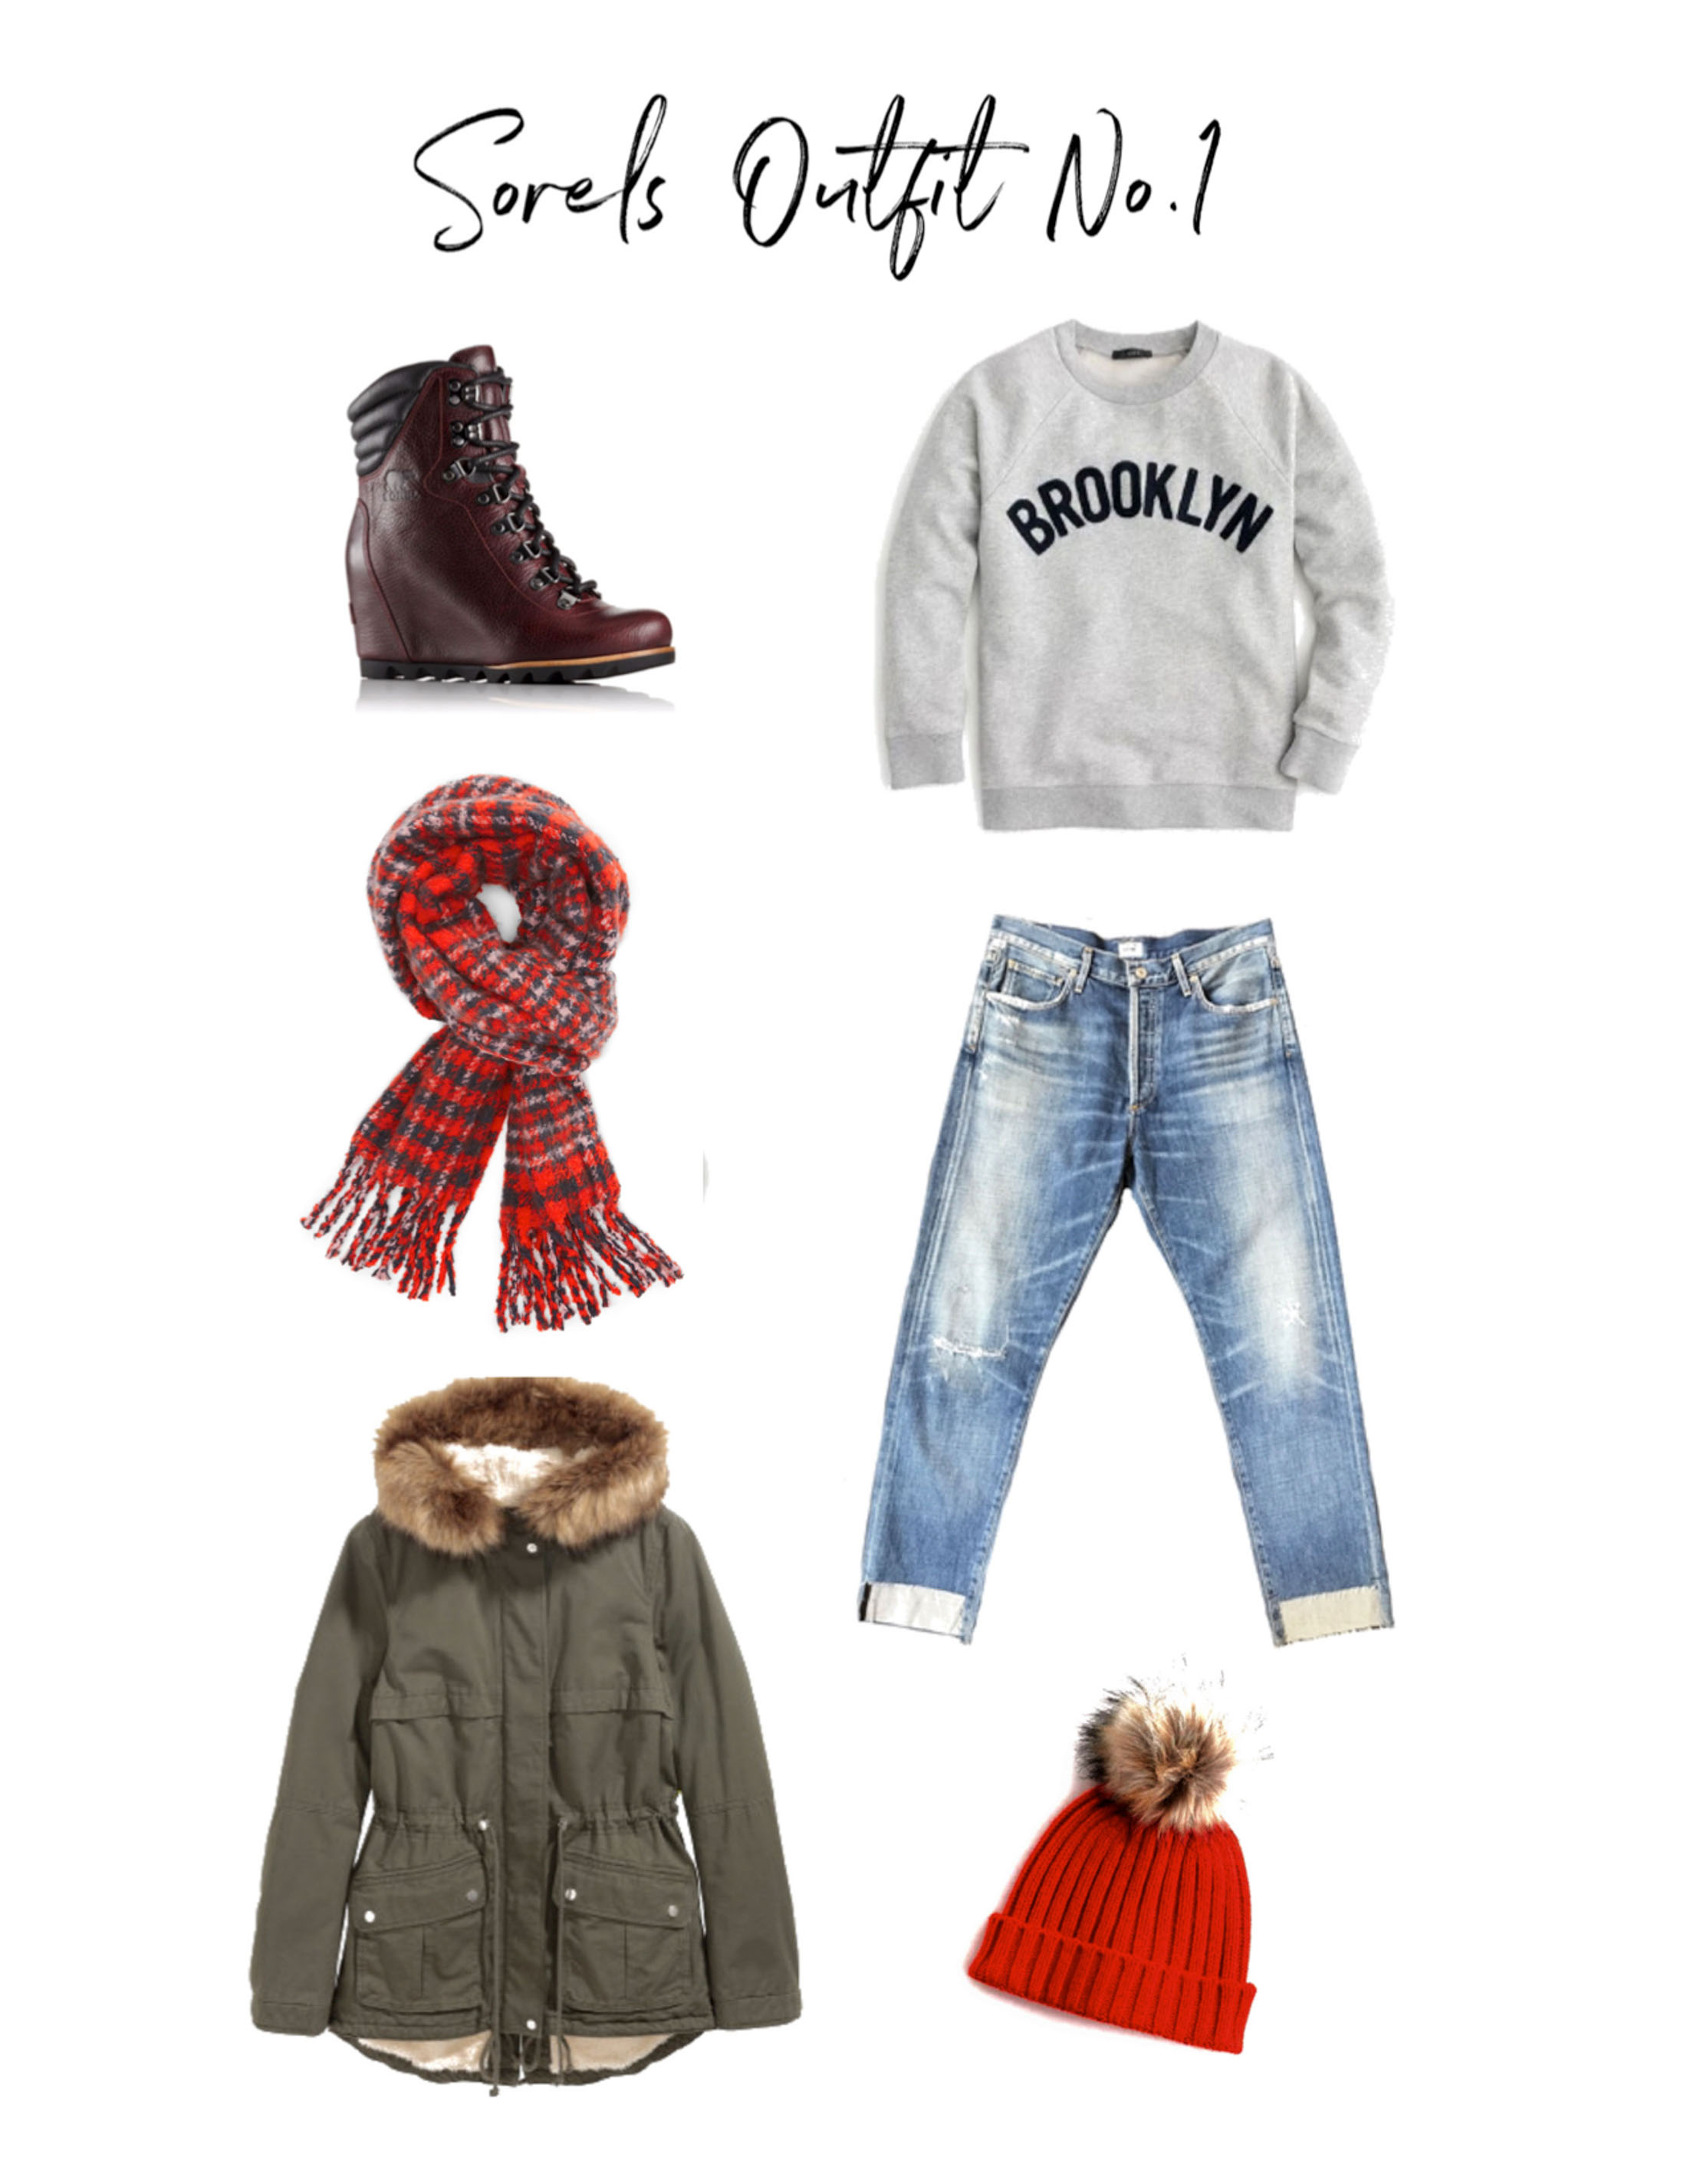 When the weather won't jive with your outfit — get out your snow boots! Our fave: wedged Sorels. Here are 4 cool ways to style from everyday to date night.